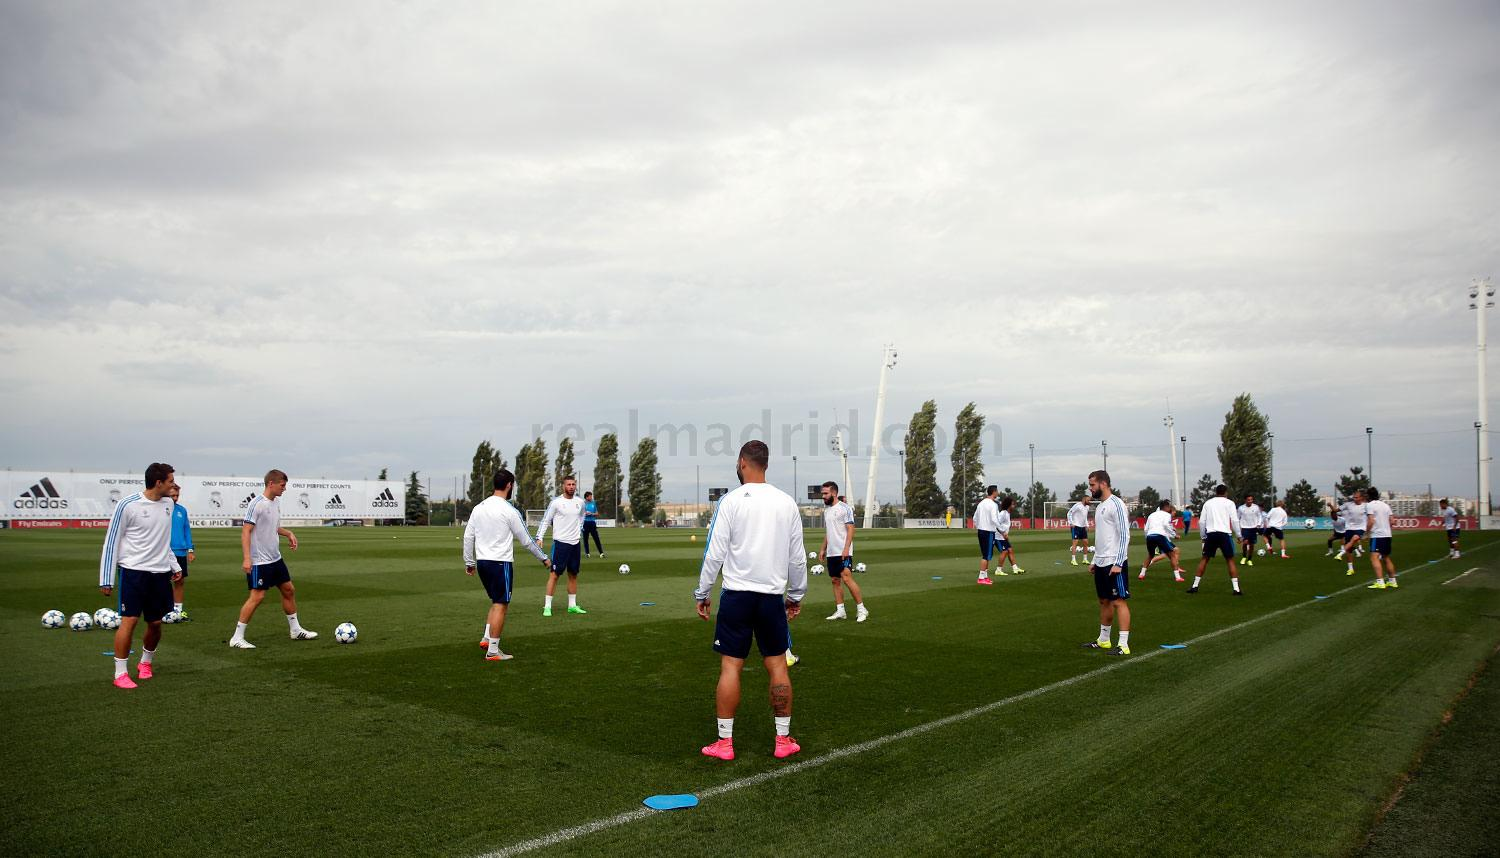 Real Madrid - Entrenamiento del Real Madrid - 15-09-2015